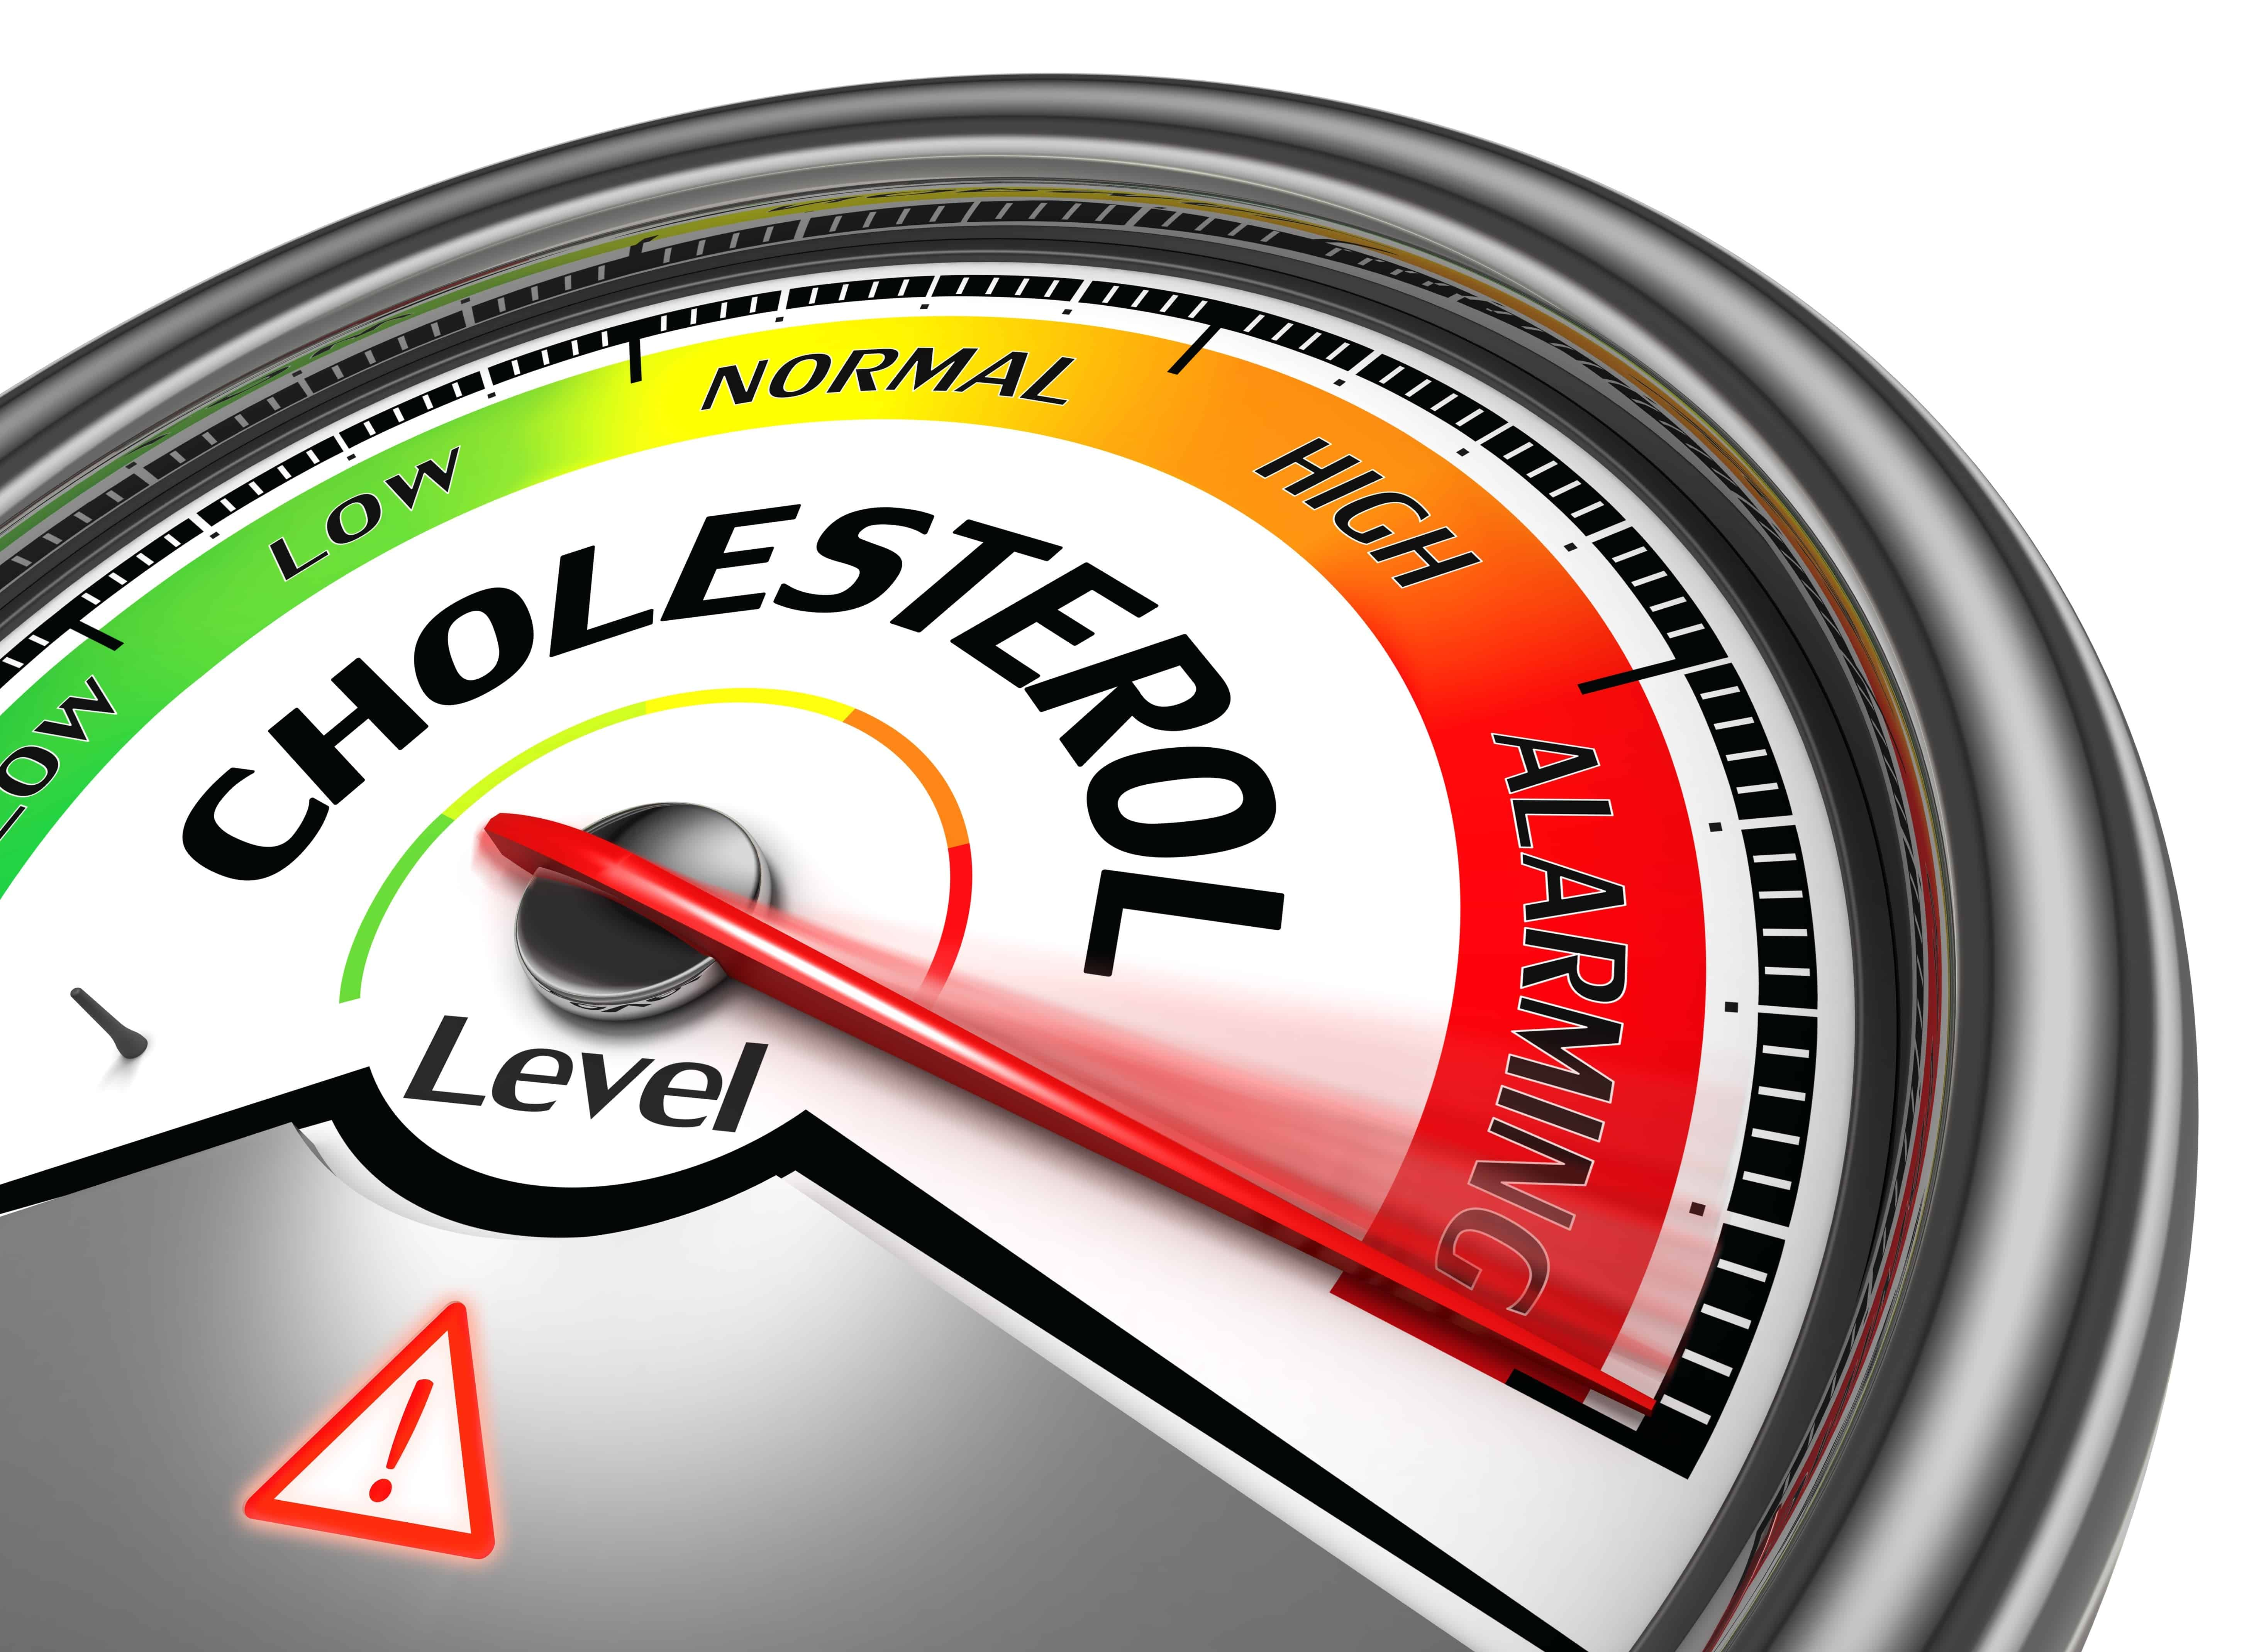 High Cholesterol Foods Can Be Beneficial